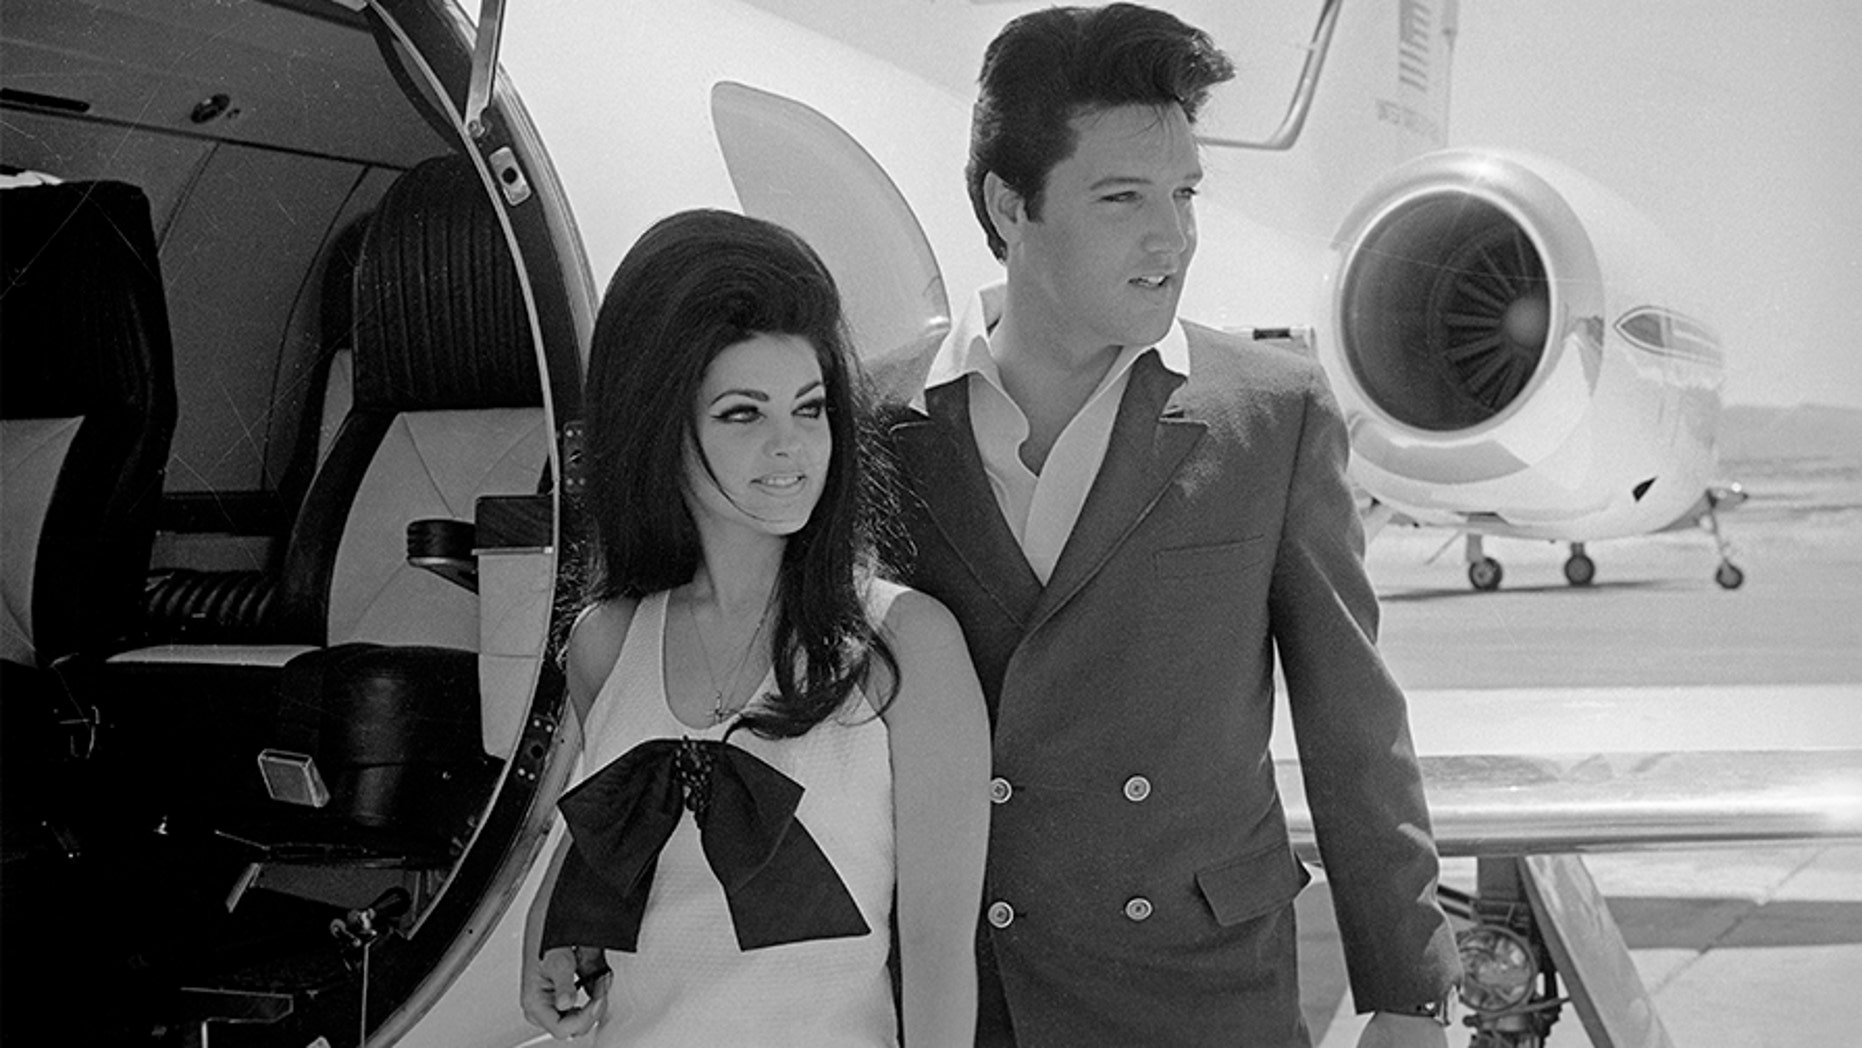 Newlyweds Elvis and Priscilla Presley, who met while Elvis was in the Army, prepare to board their private jet following their wedding at the Aladdin Resort and Casino in Las Vegas